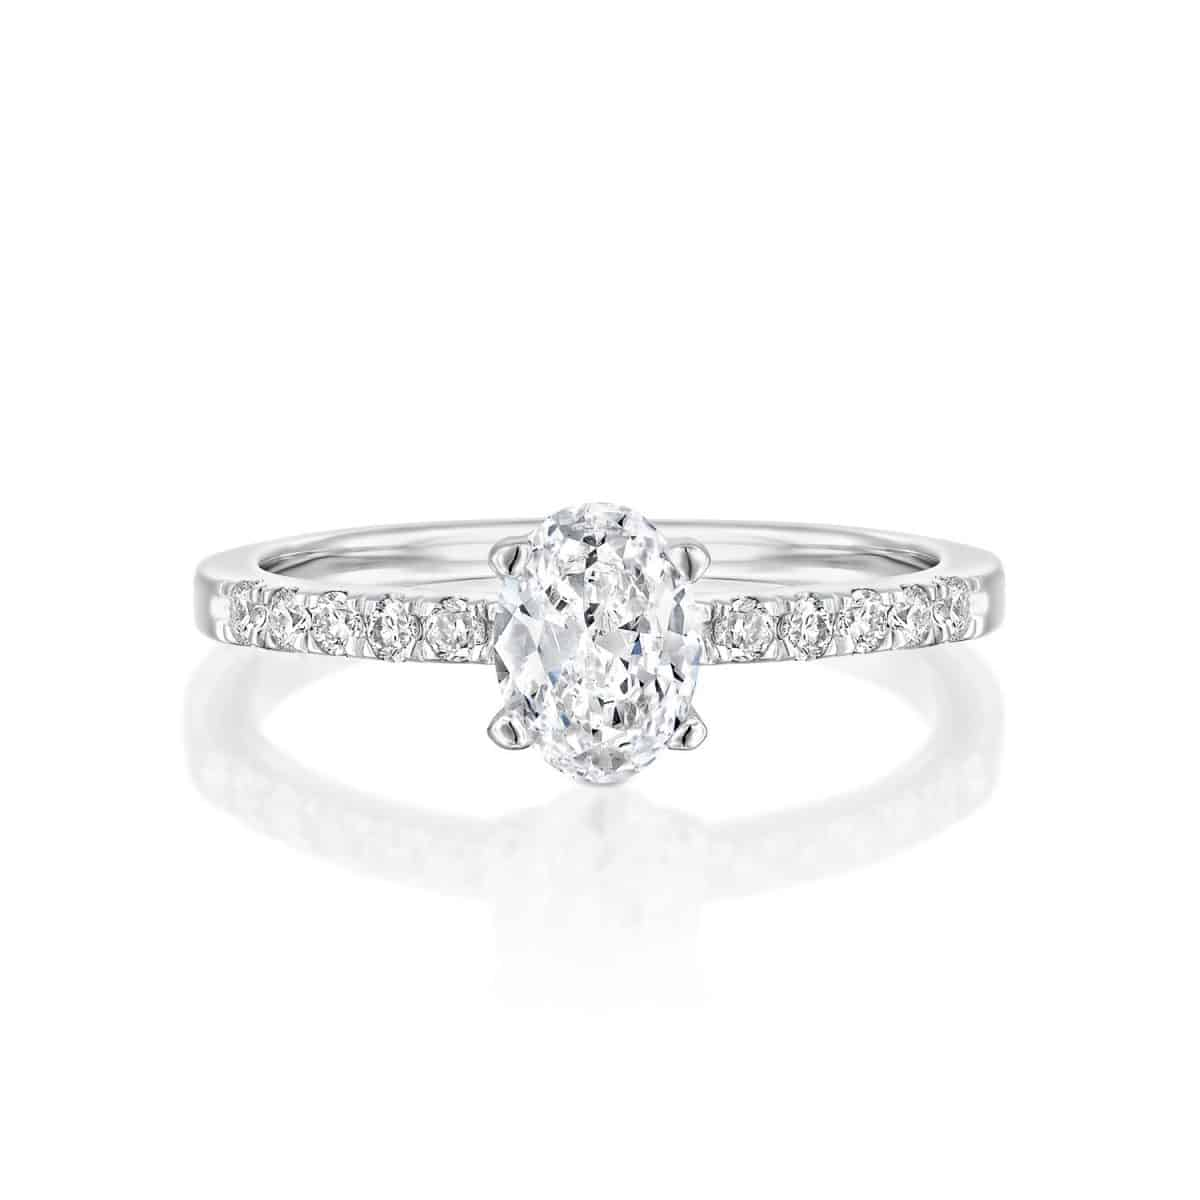 Oval - White Gold Lab Grown Diamond Engagement Ring 0.61ct. - laying